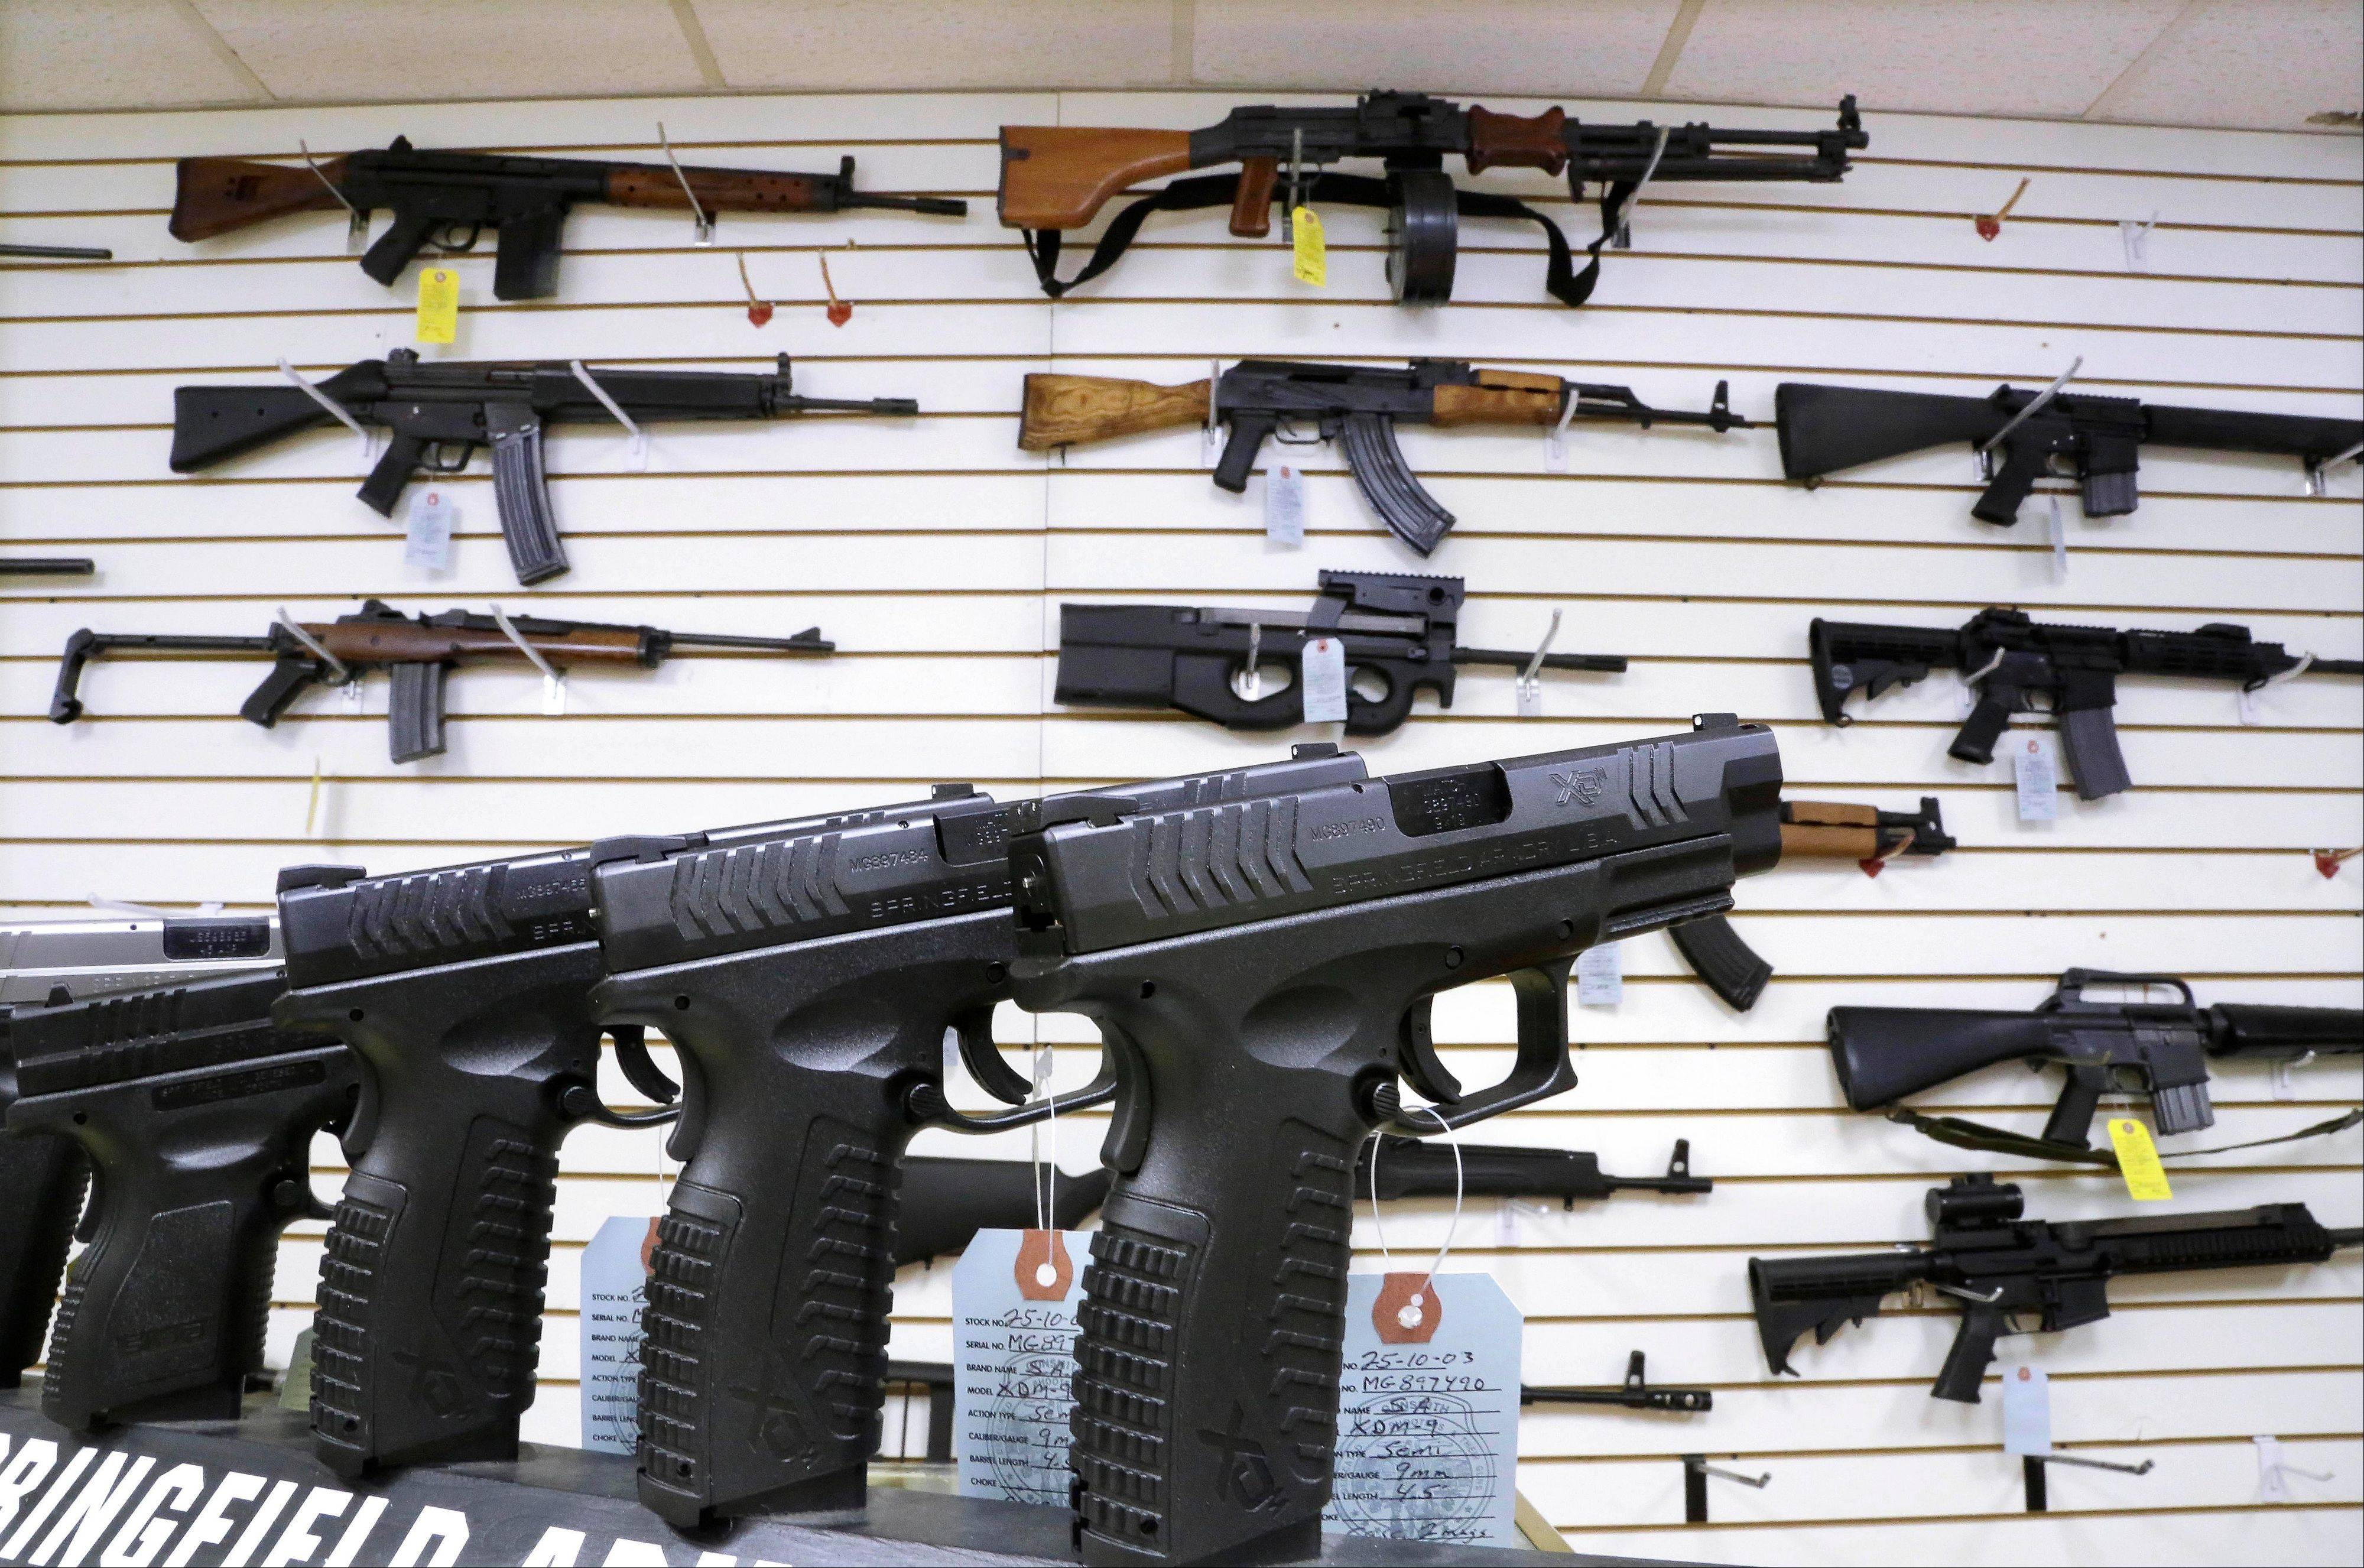 In this Jan. 16, 2013 file photo, assault weapons and hand guns are seen for sale at Capitol City Arms Supply in Springfield, Ill. Illinois became the last state in the nation to allow the concealed carry of firearms after a federal court ruling and lengthy negotiations in the General Assembly. The story was voted as one of the top 10 stories in Illinois for 2013.